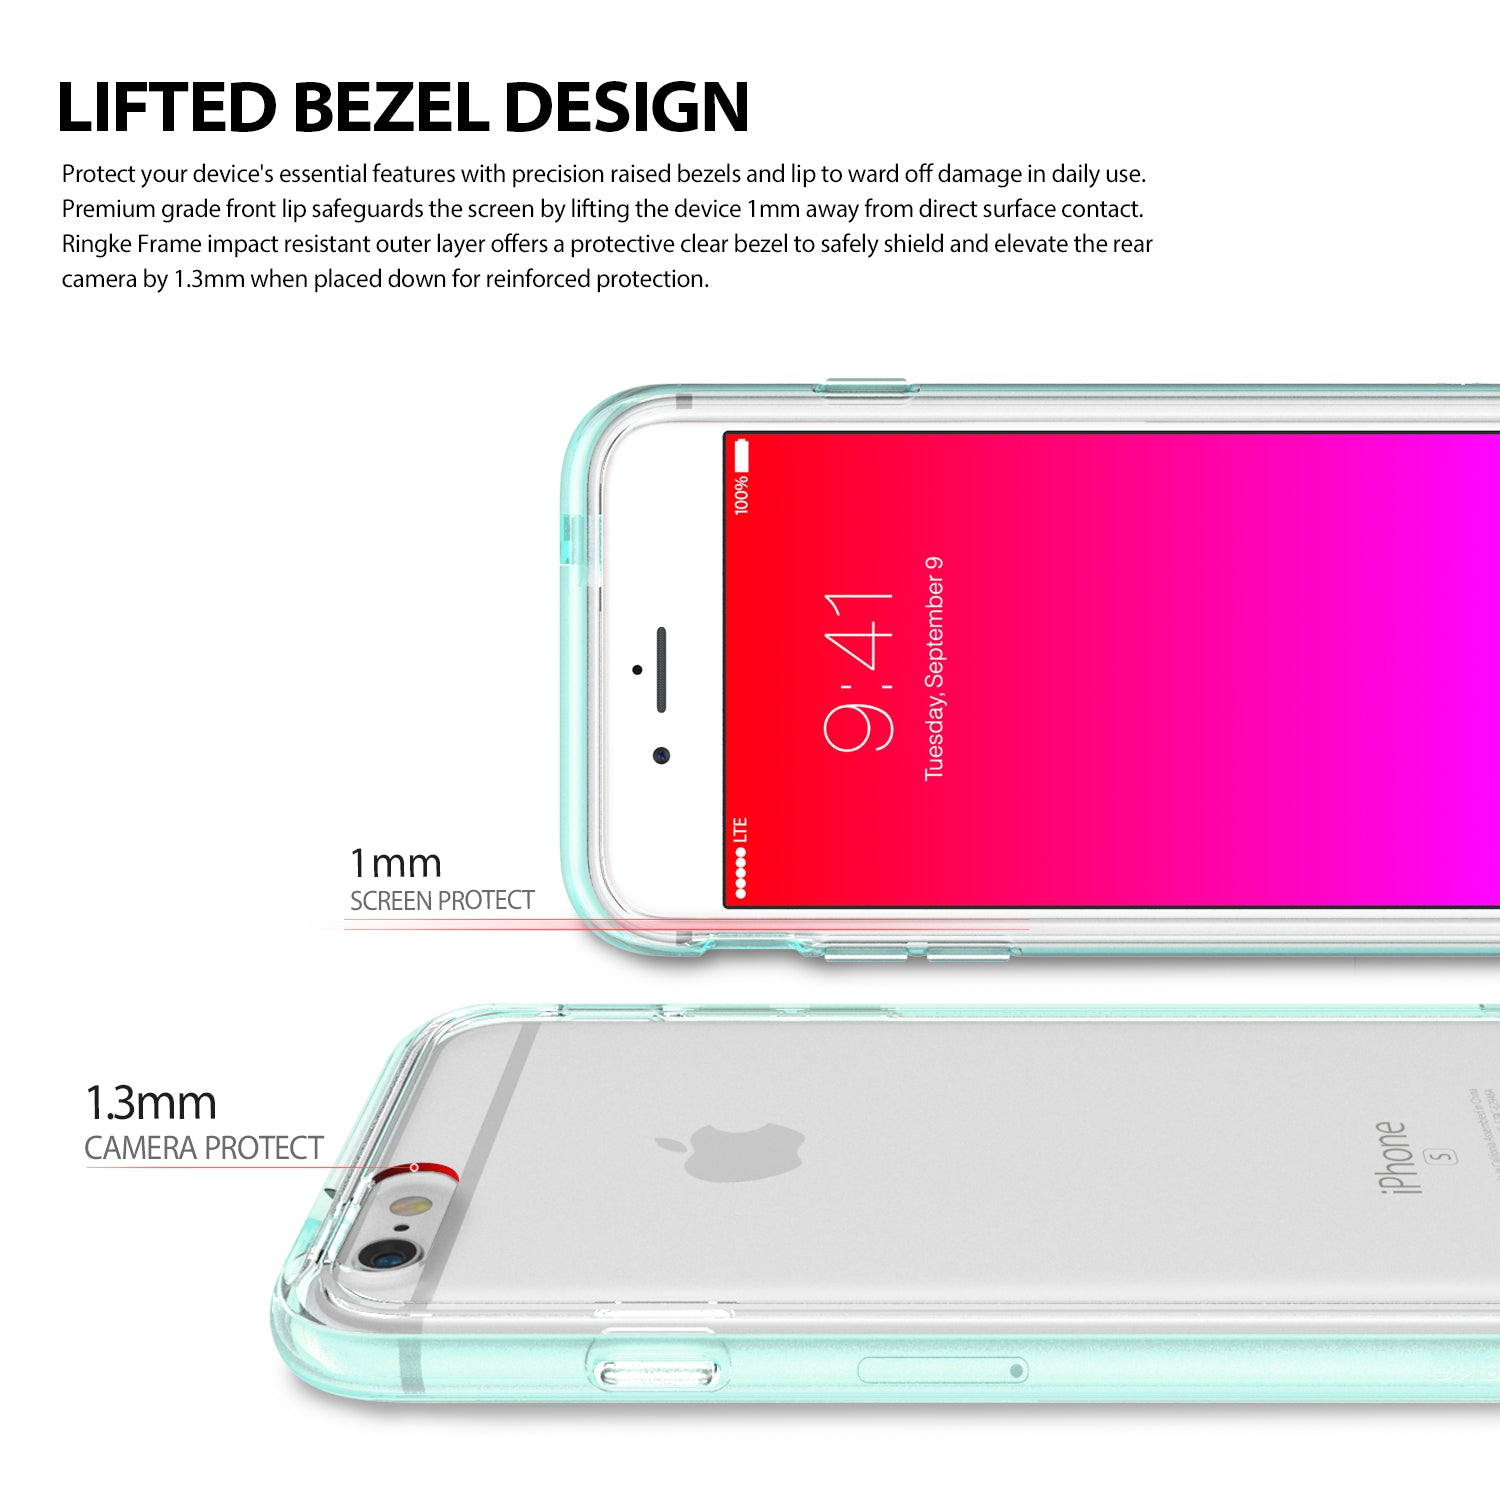 ringke frame bezel side protection case cover for iphone 6 6s main ultimate thin